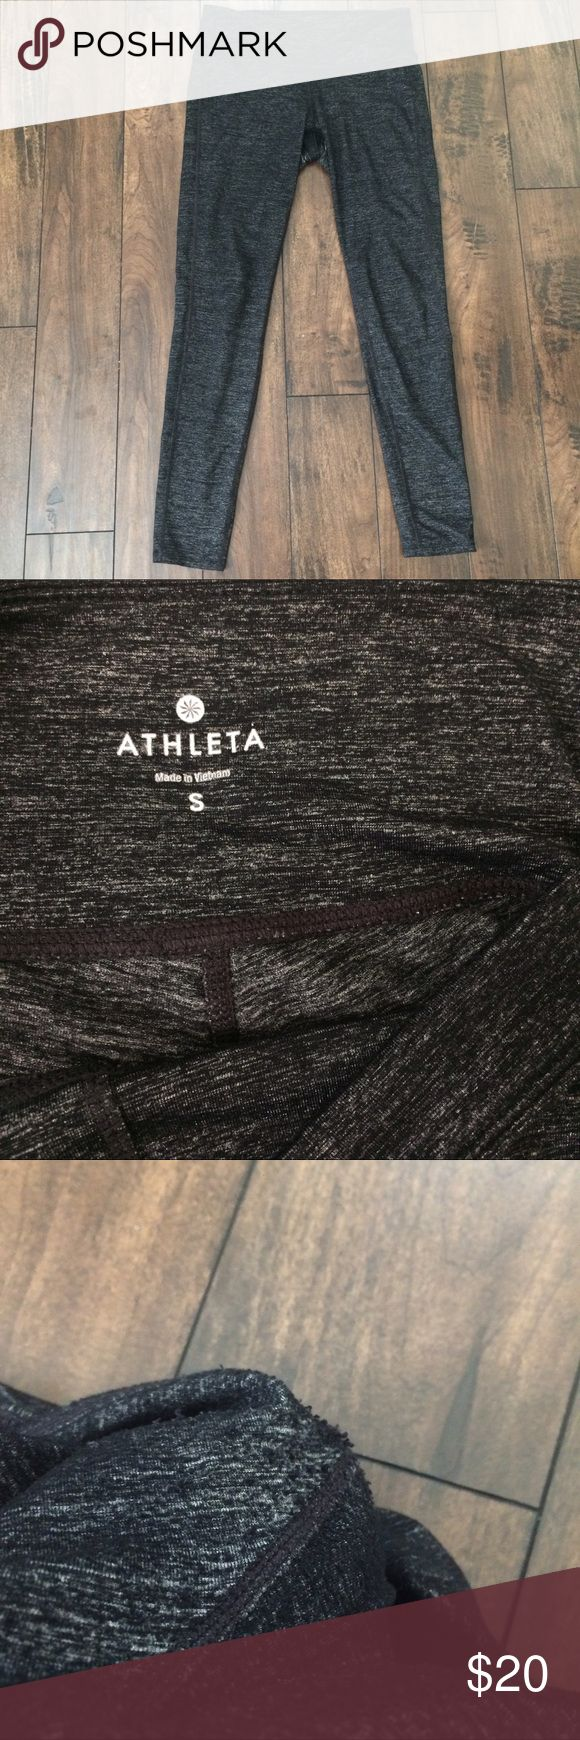 """Athleta Grey Workout Pants Dark grey fitted leggings from Athleta in good condition and have been well worn. Photo #3 shows the piling on the outside of the crotch area and #4 shows that the fabric has worn out. They are extremely soft and comfortable, however the care tag has been cut out so I'm not certain on the fabric or style. Approximate measurements of the waist laying flat are top band 14"""", hip 15"""", and length is 34"""". Athleta Pants Leggings"""